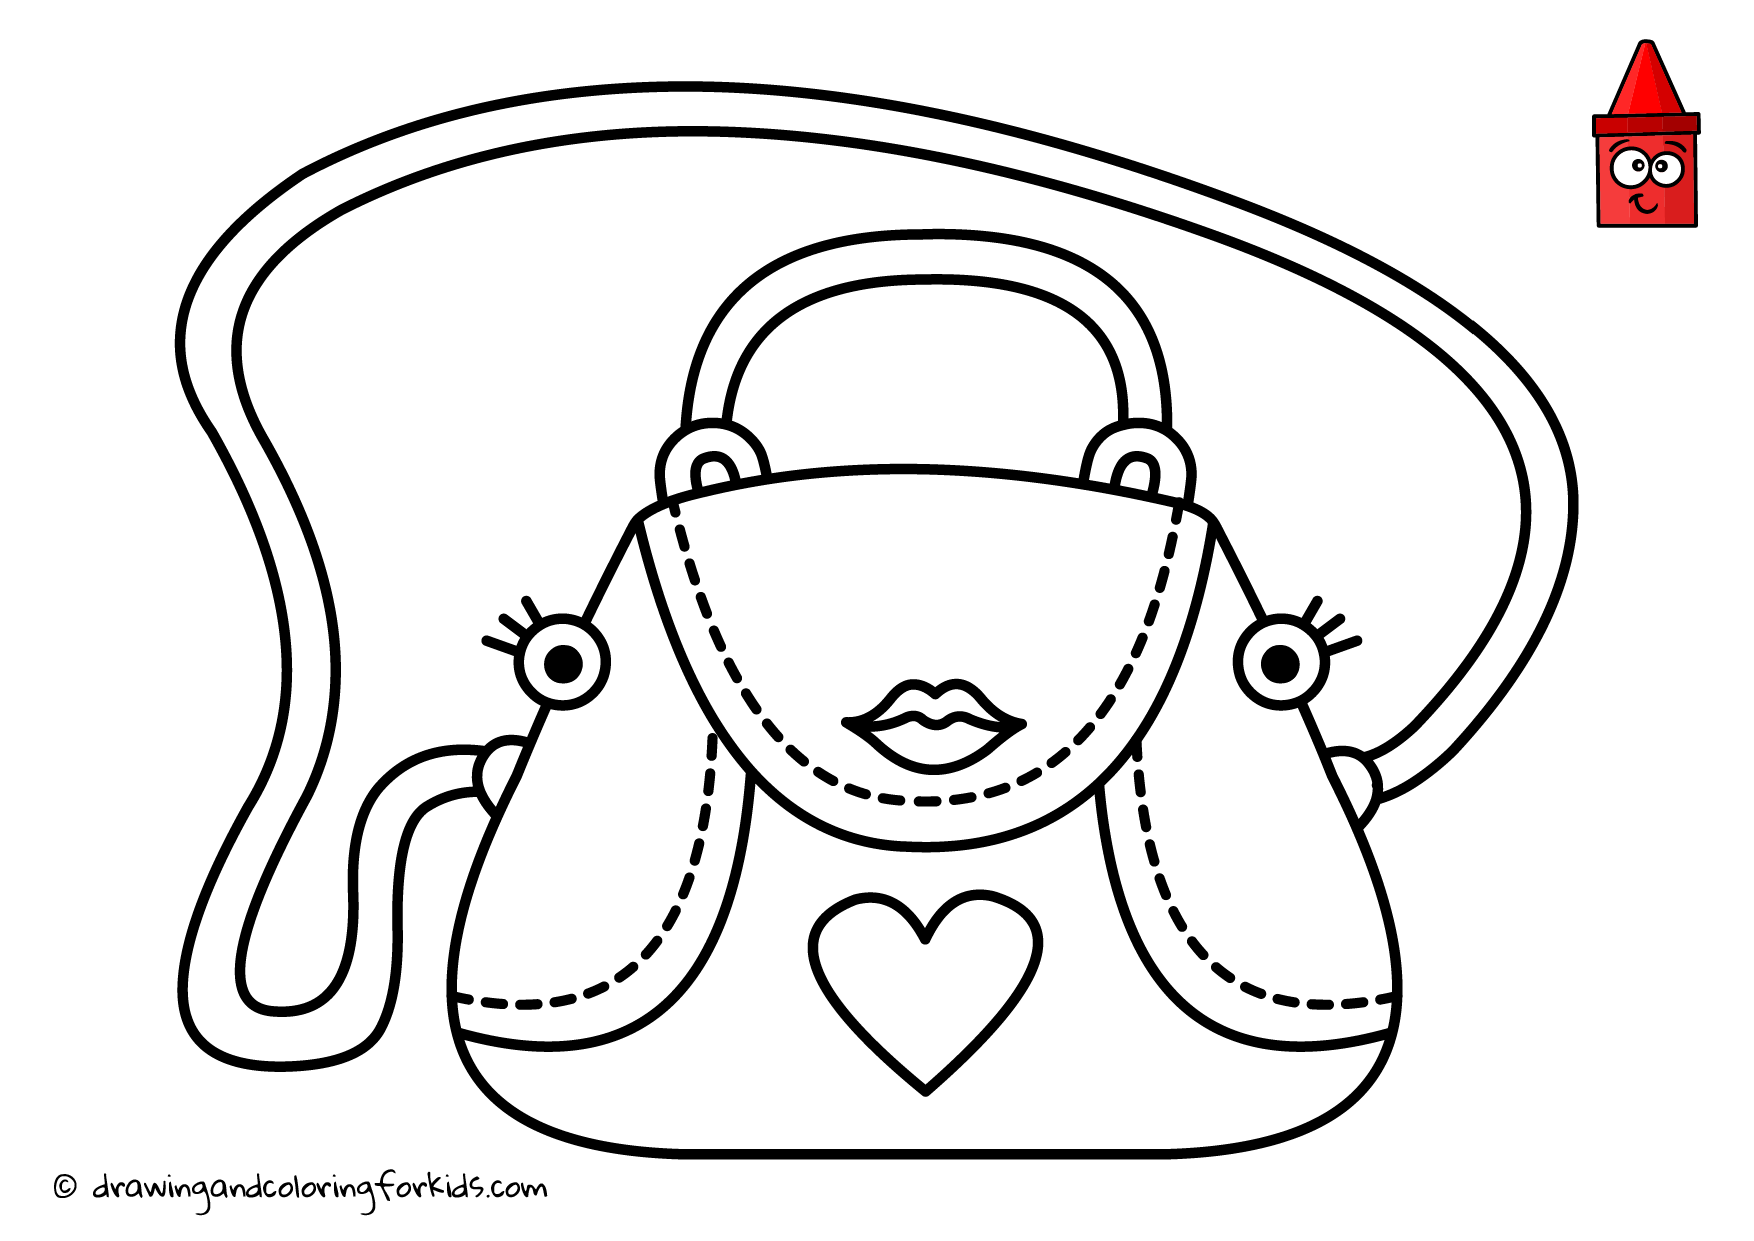 Choosing Purse coloring page | Free Printable Coloring Pages | 1241x1754